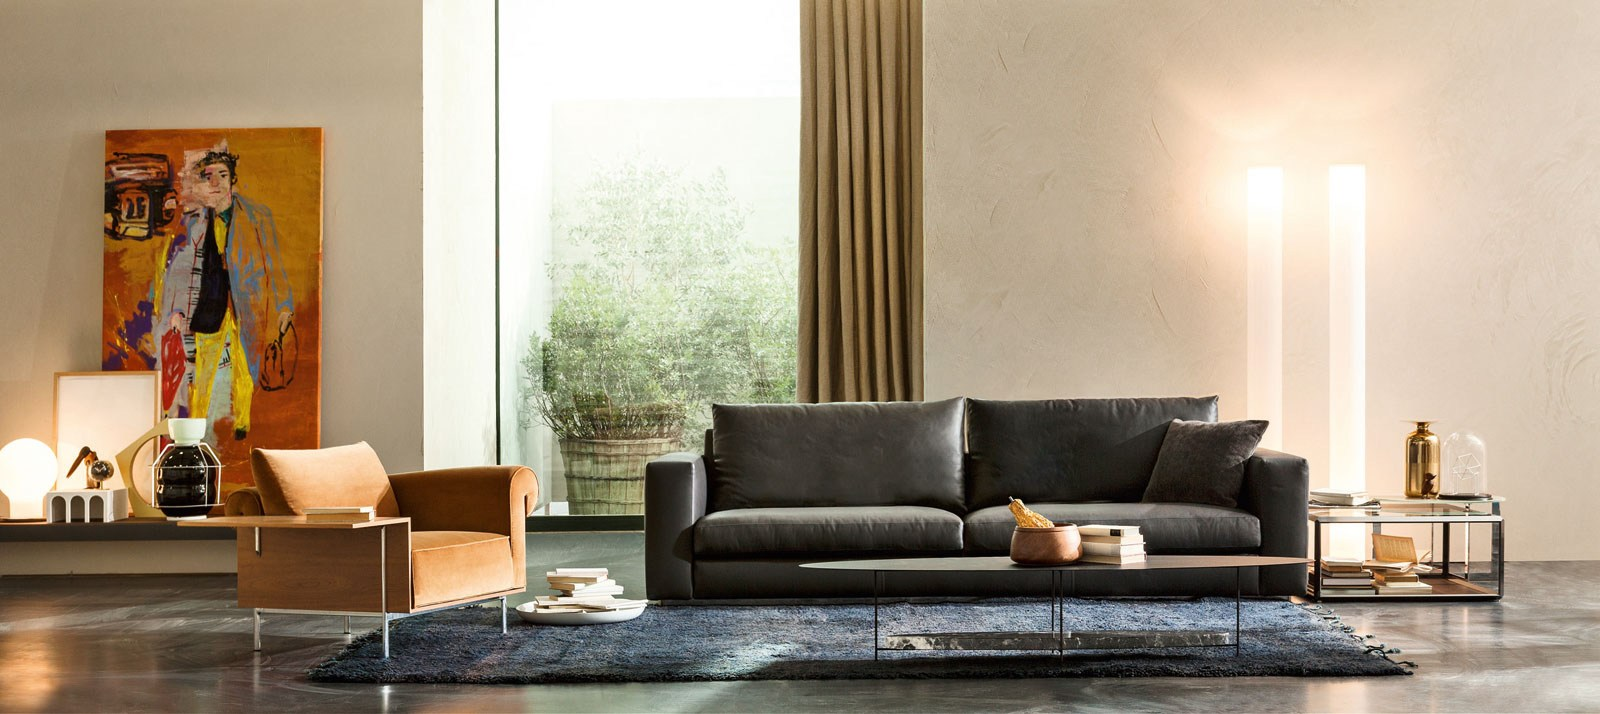 controra armchair by molteni c design ron gilad. Black Bedroom Furniture Sets. Home Design Ideas